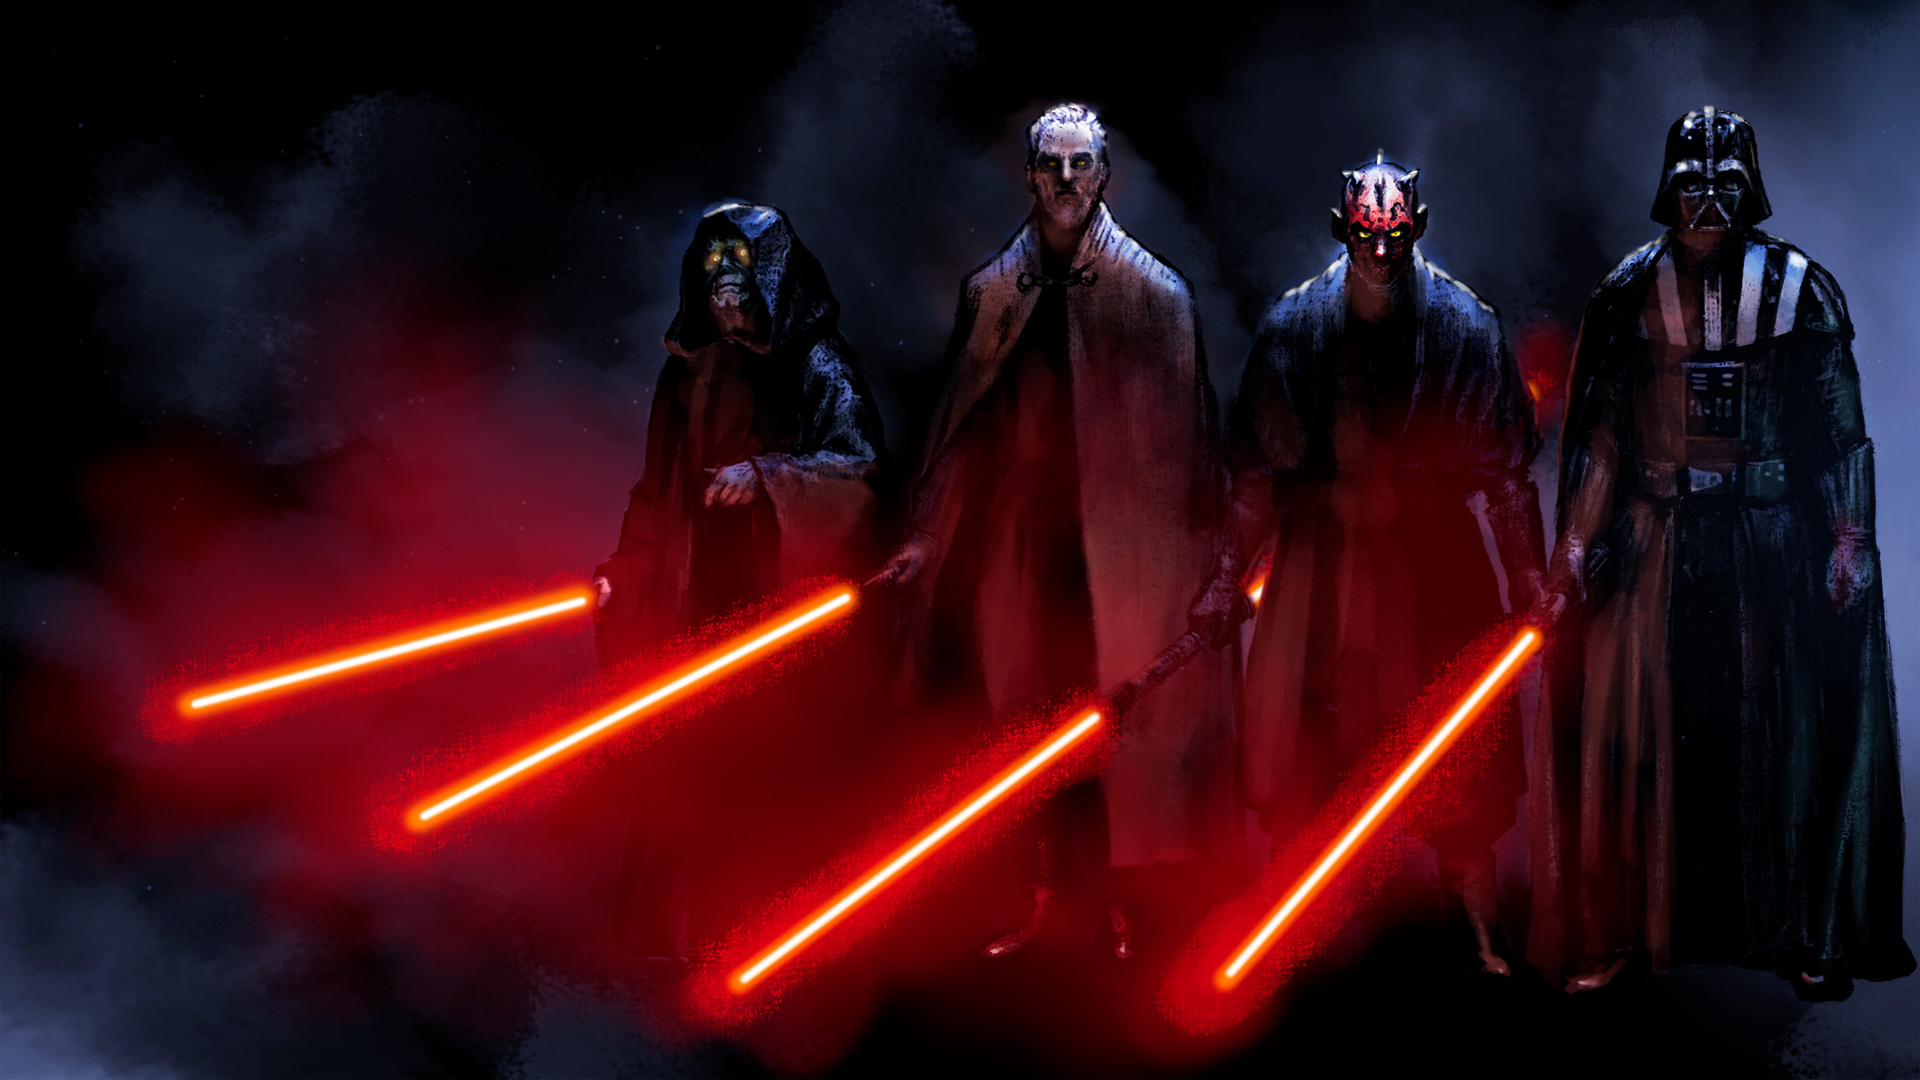 Battle No 19 Sith-Lords